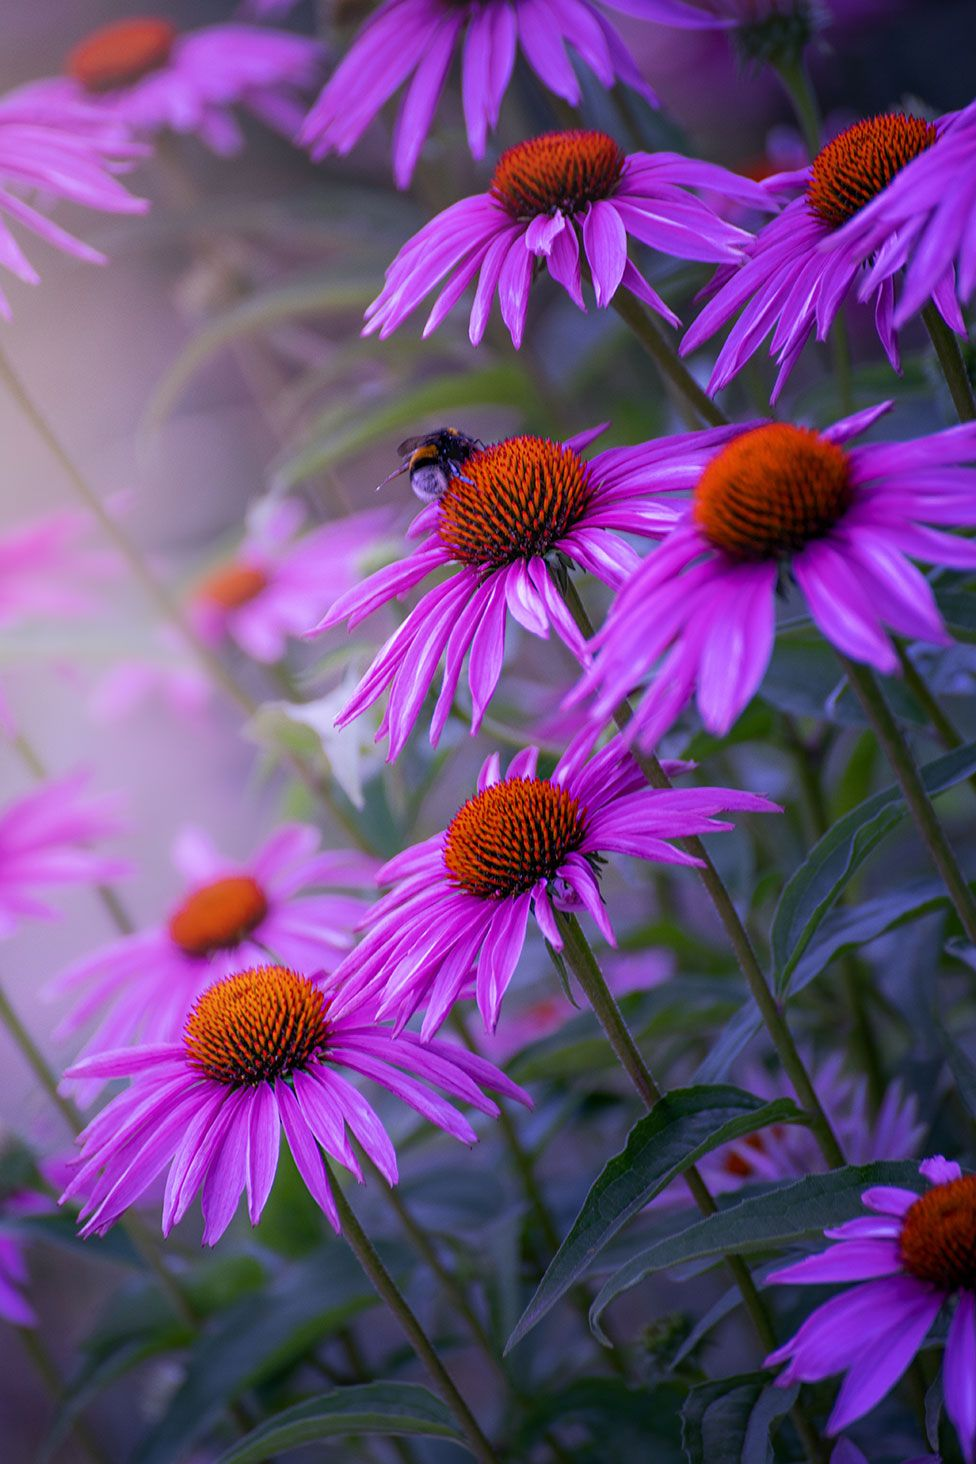 Purple flowers with a bee on one of the flowers